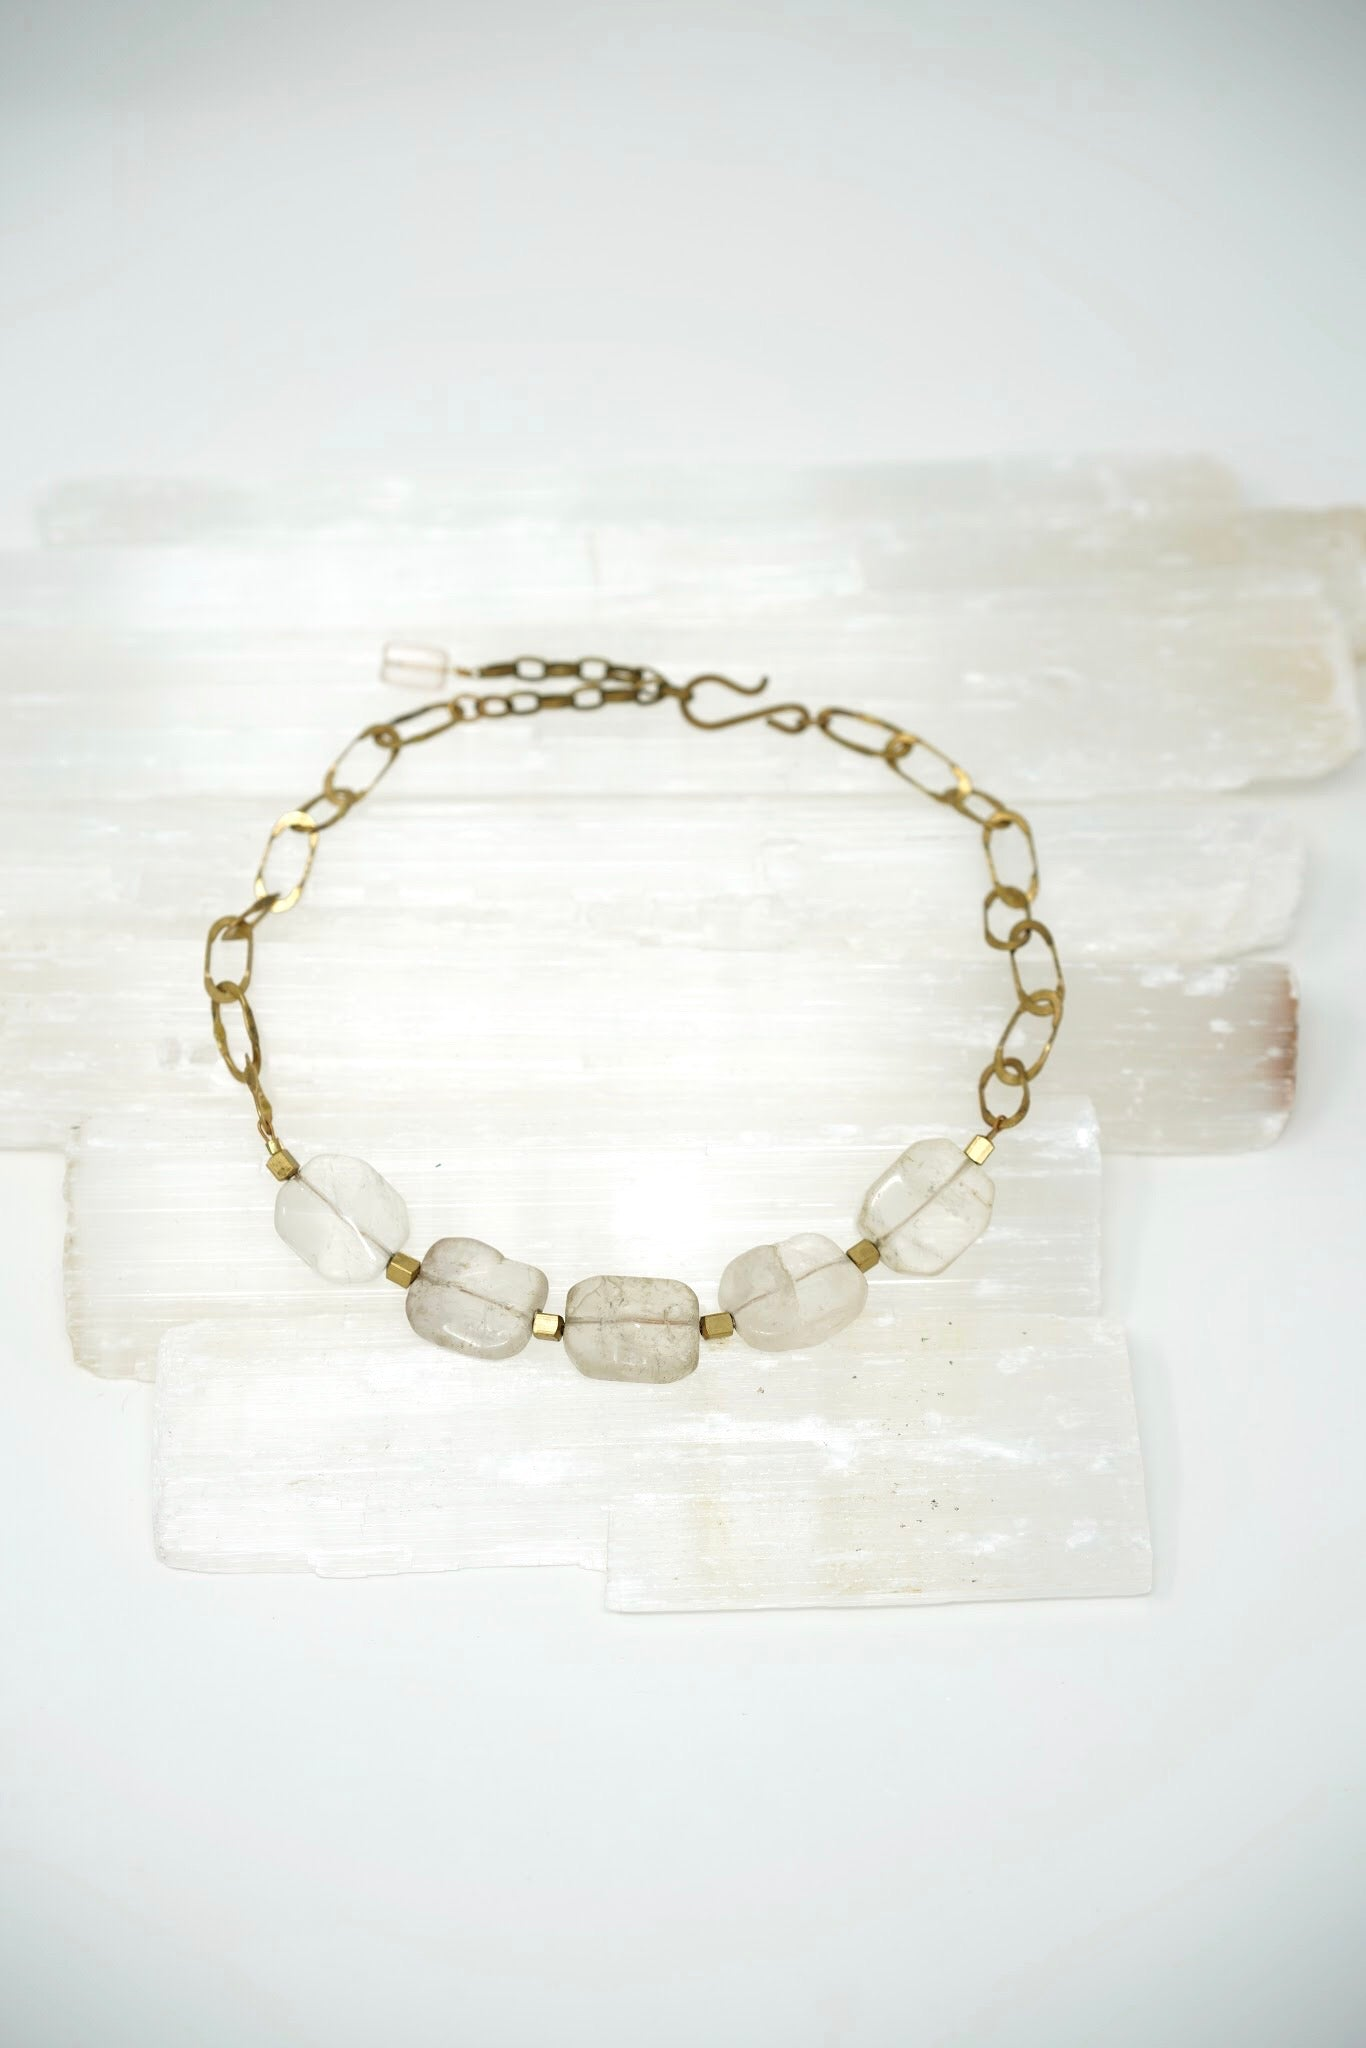 Translucent Crystal & Brass Chain Necklace